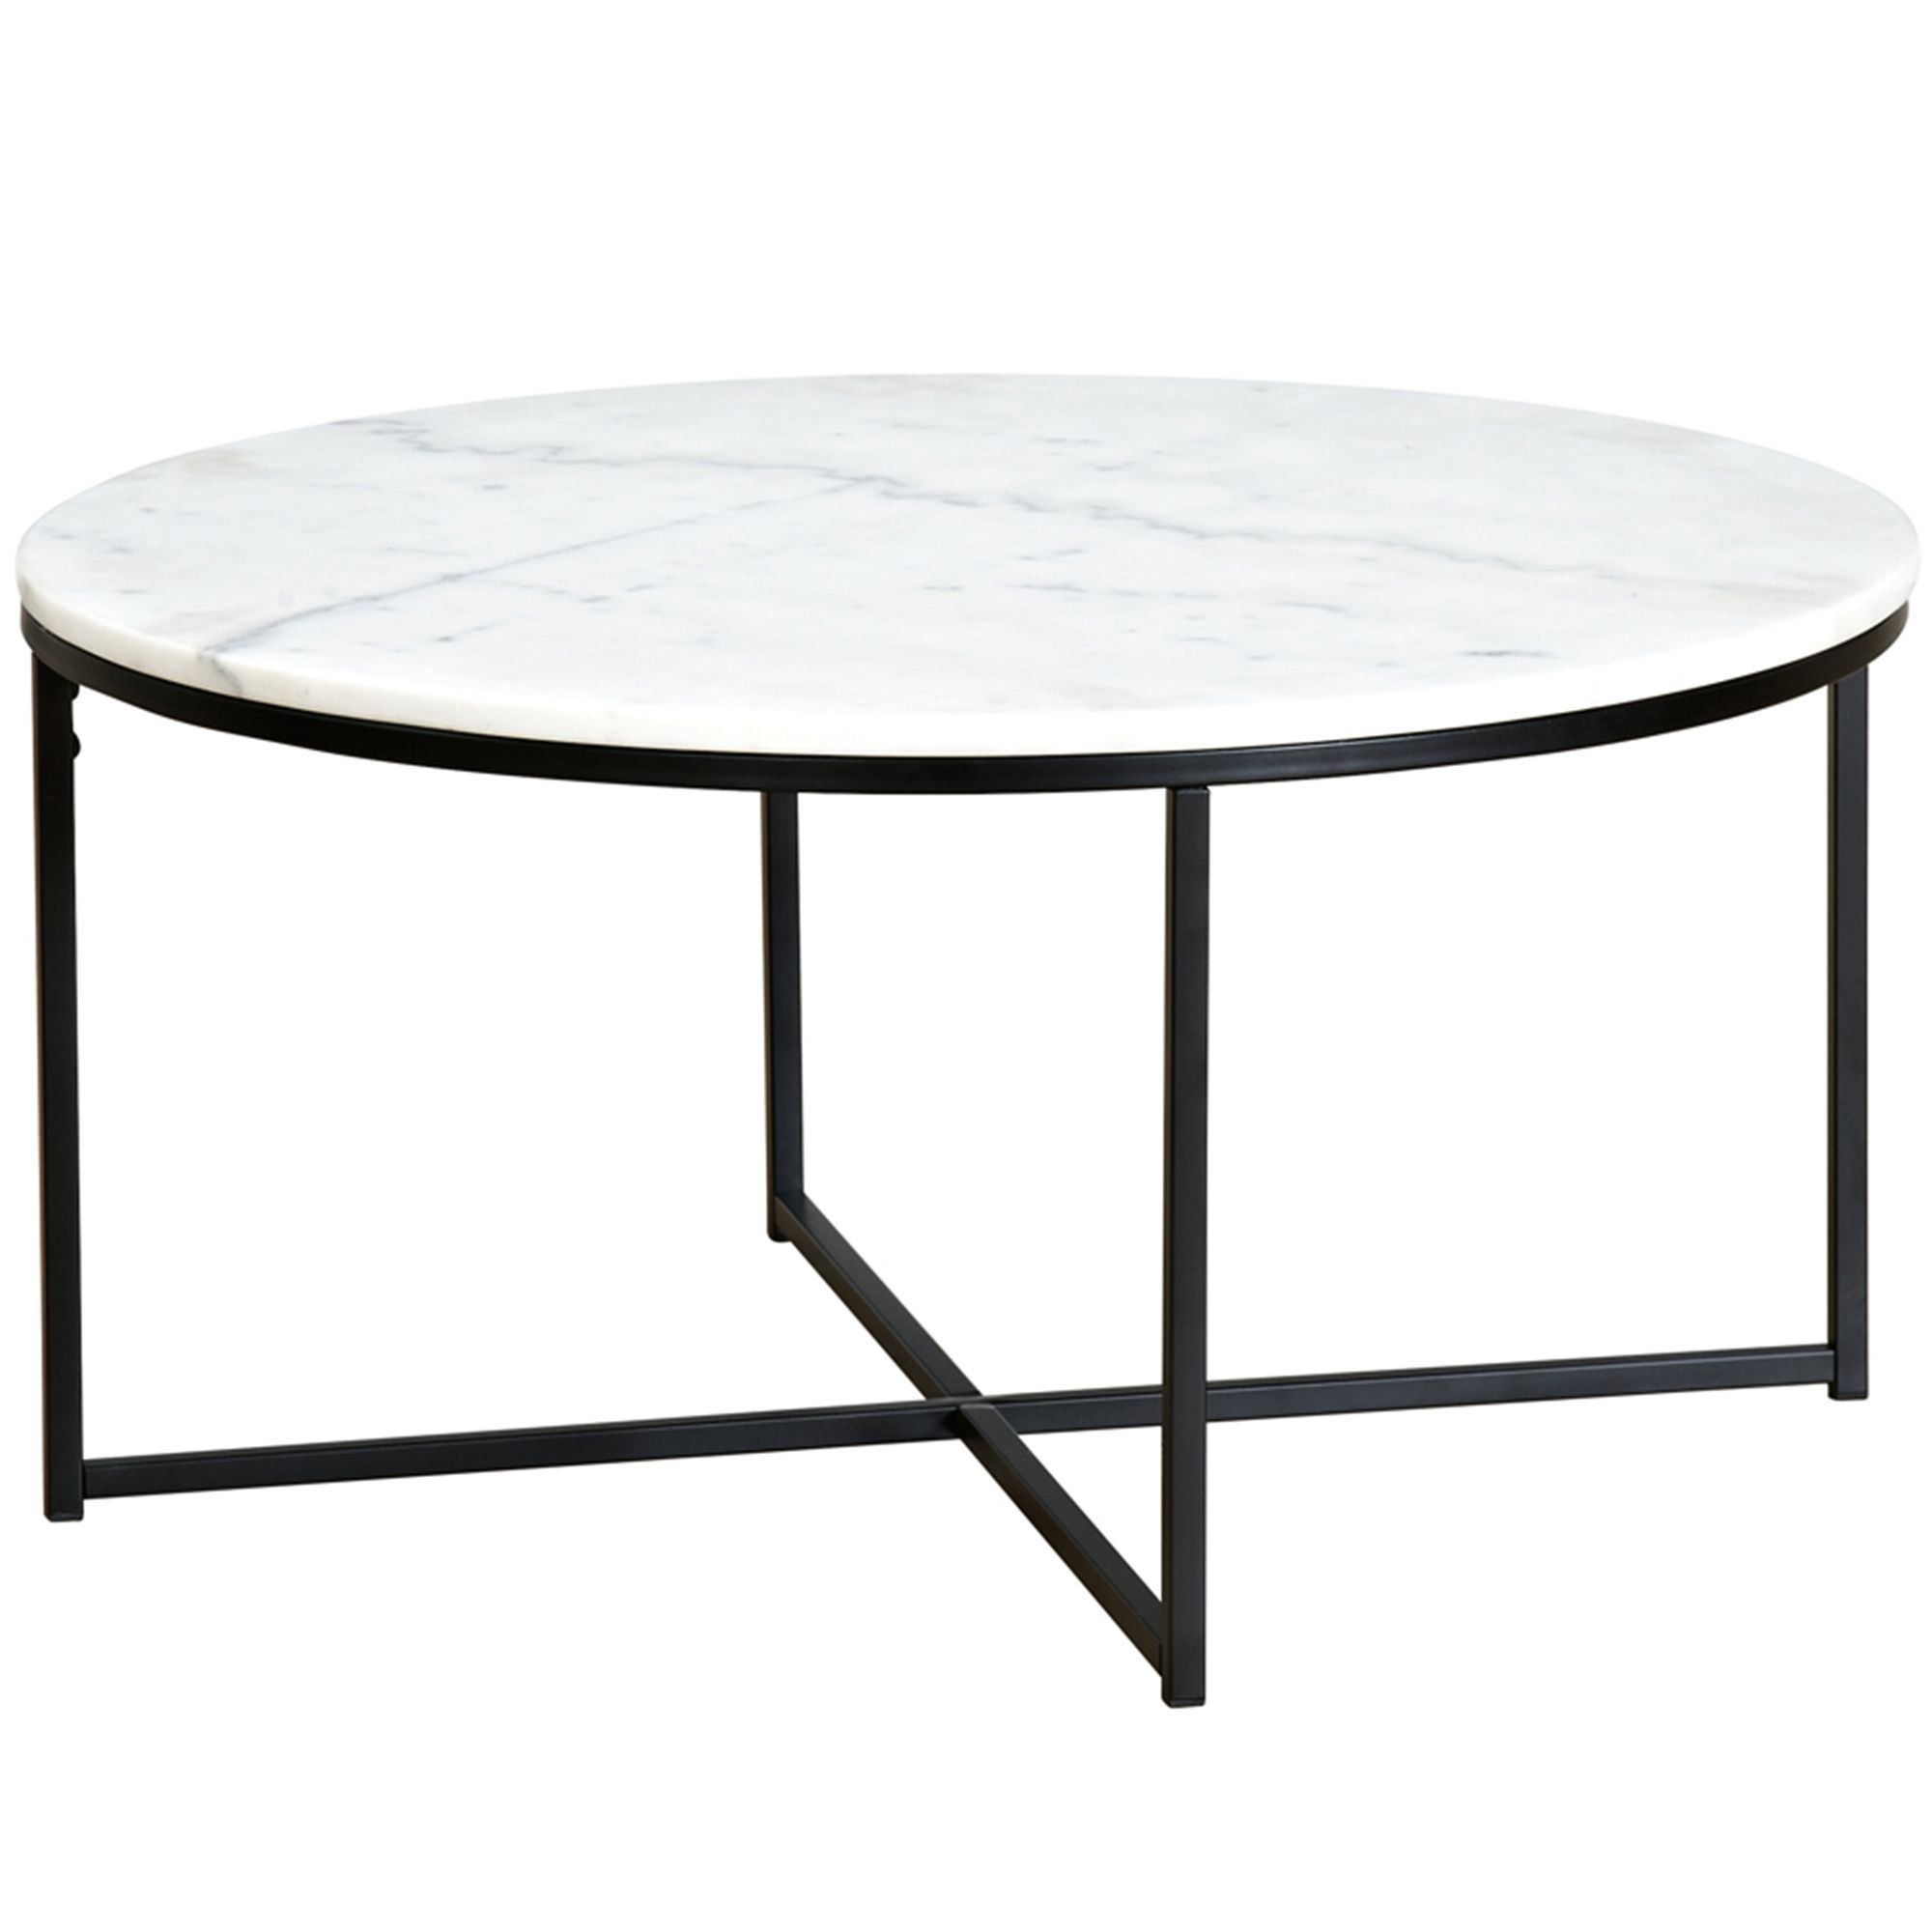 Round Black Marble Coffee Table 1000 Marble Round Coffee Table Faux Marble Coffee Table Marble Top Coffee Table [ 2000 x 2000 Pixel ]